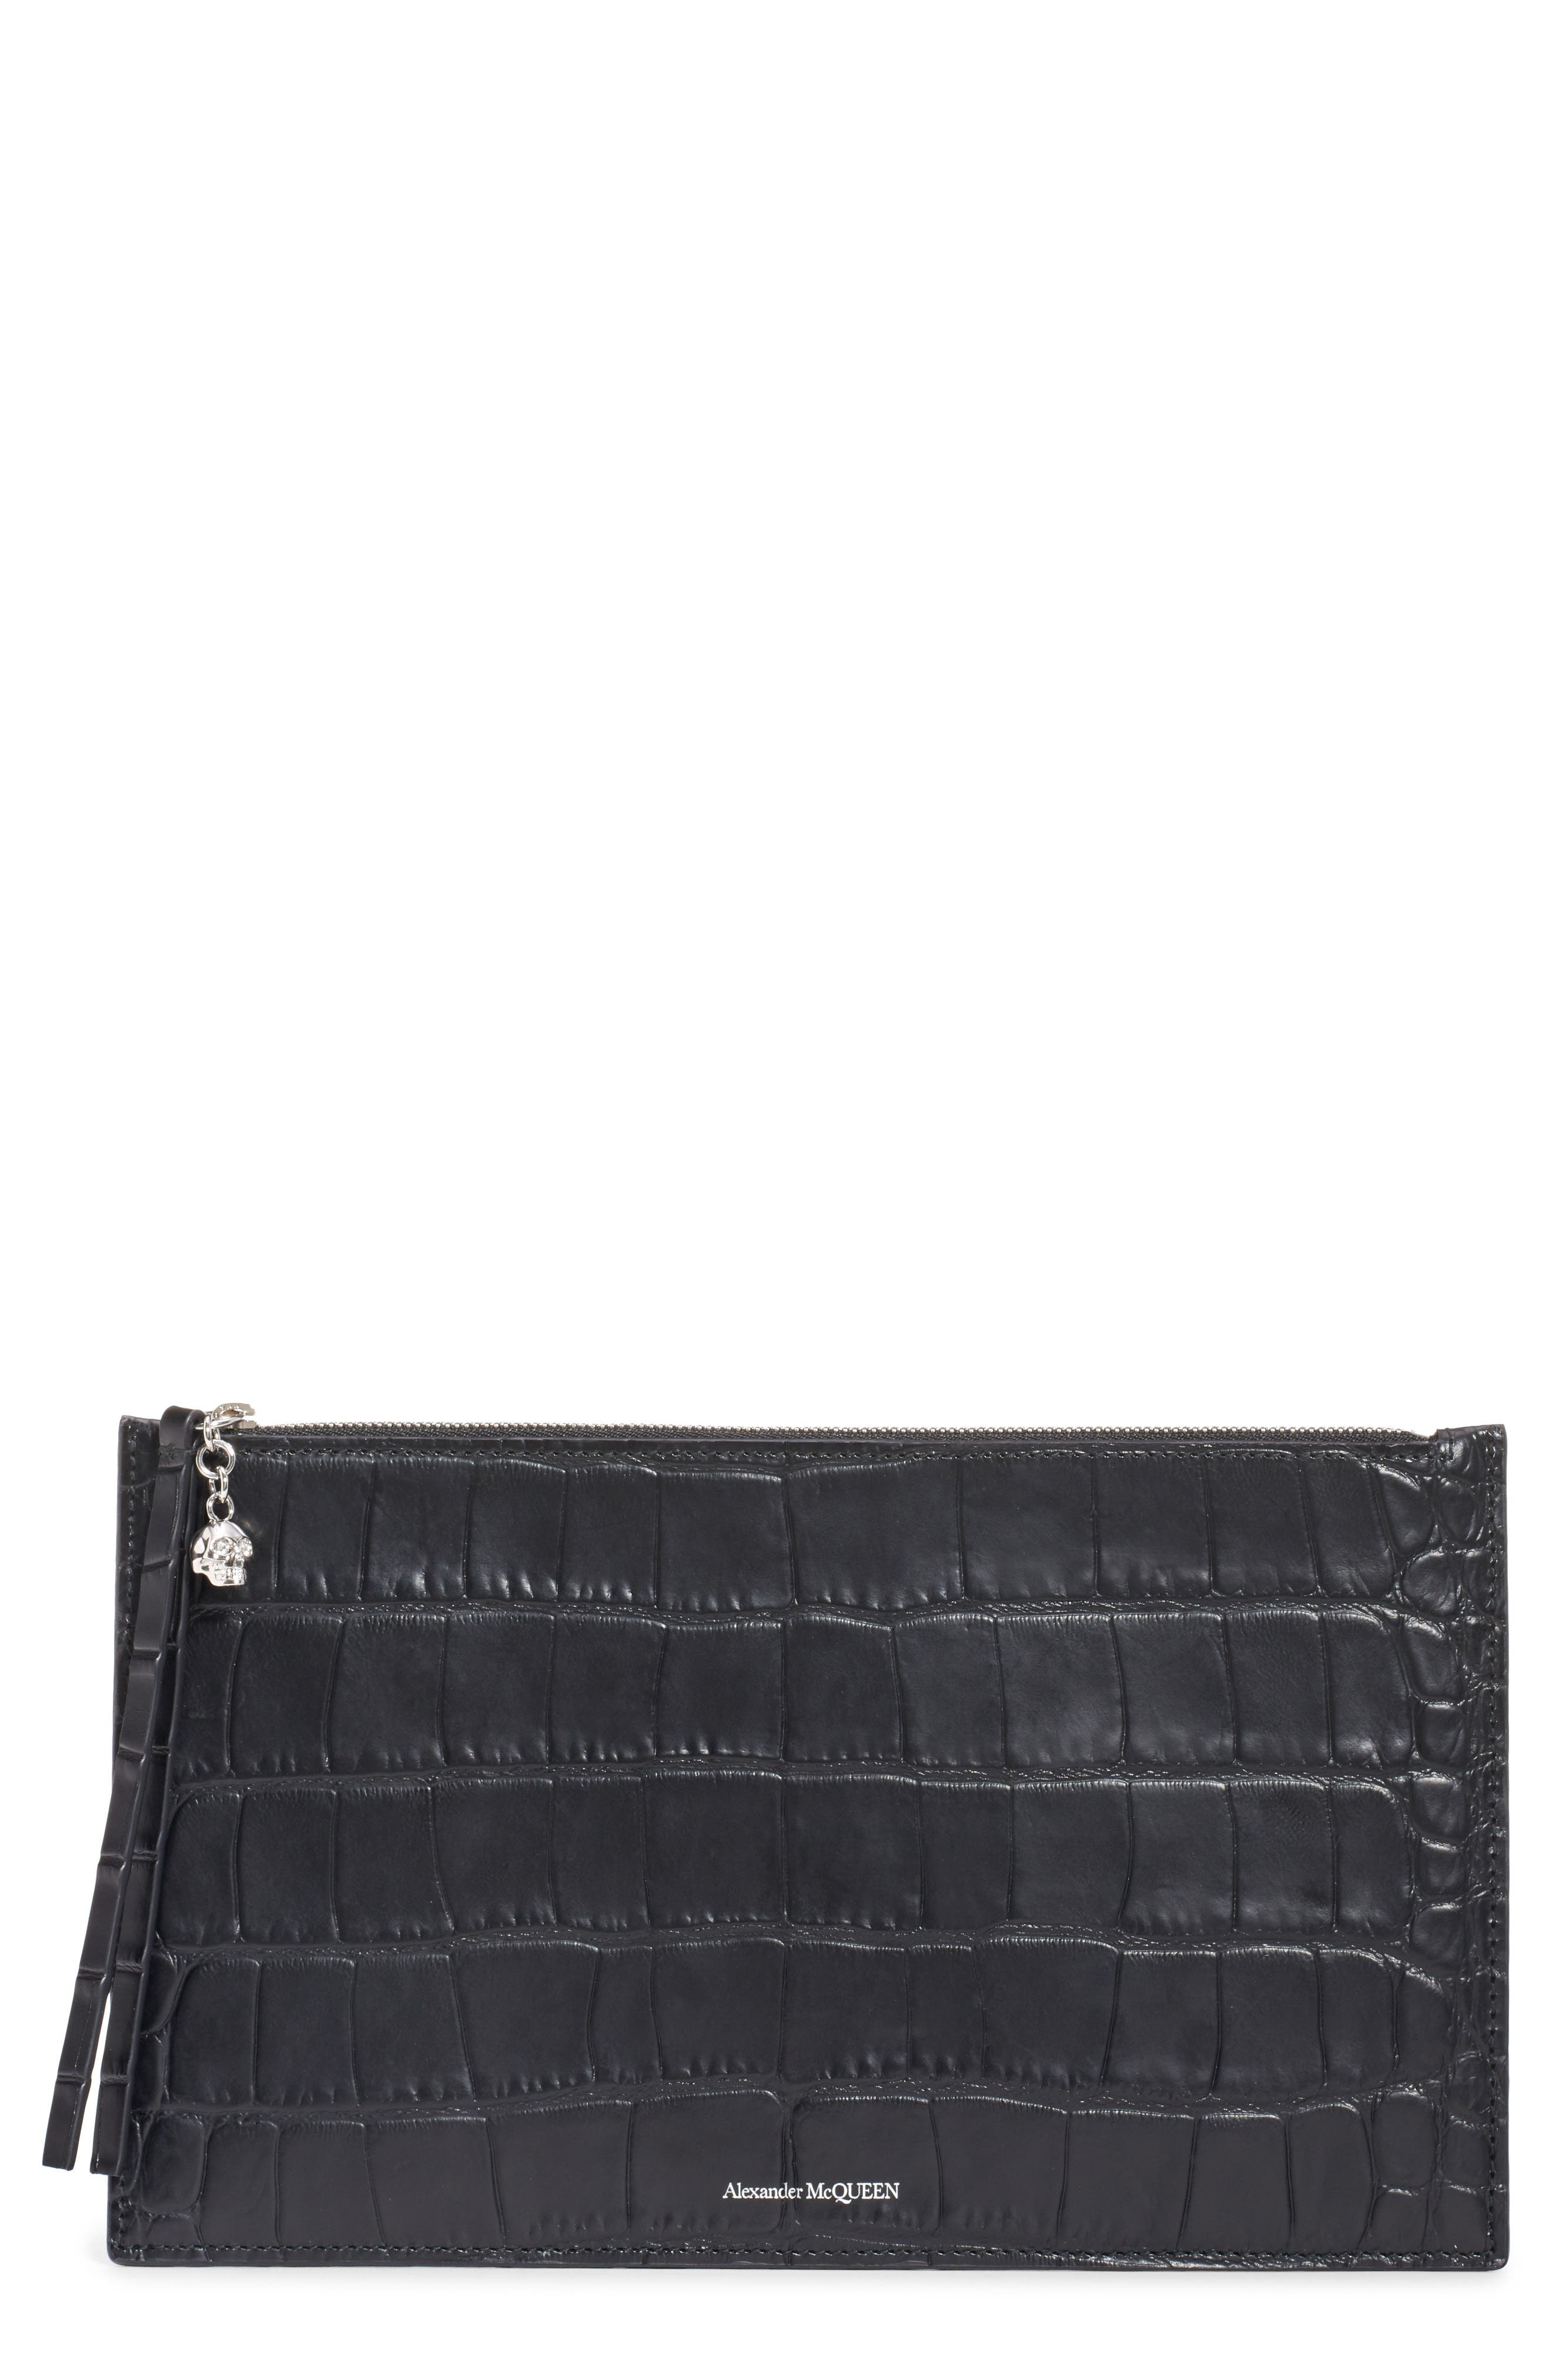 ALEXANDER MCQUEEN, Croc Embossed Leather Pouch, Main thumbnail 1, color, BLACK